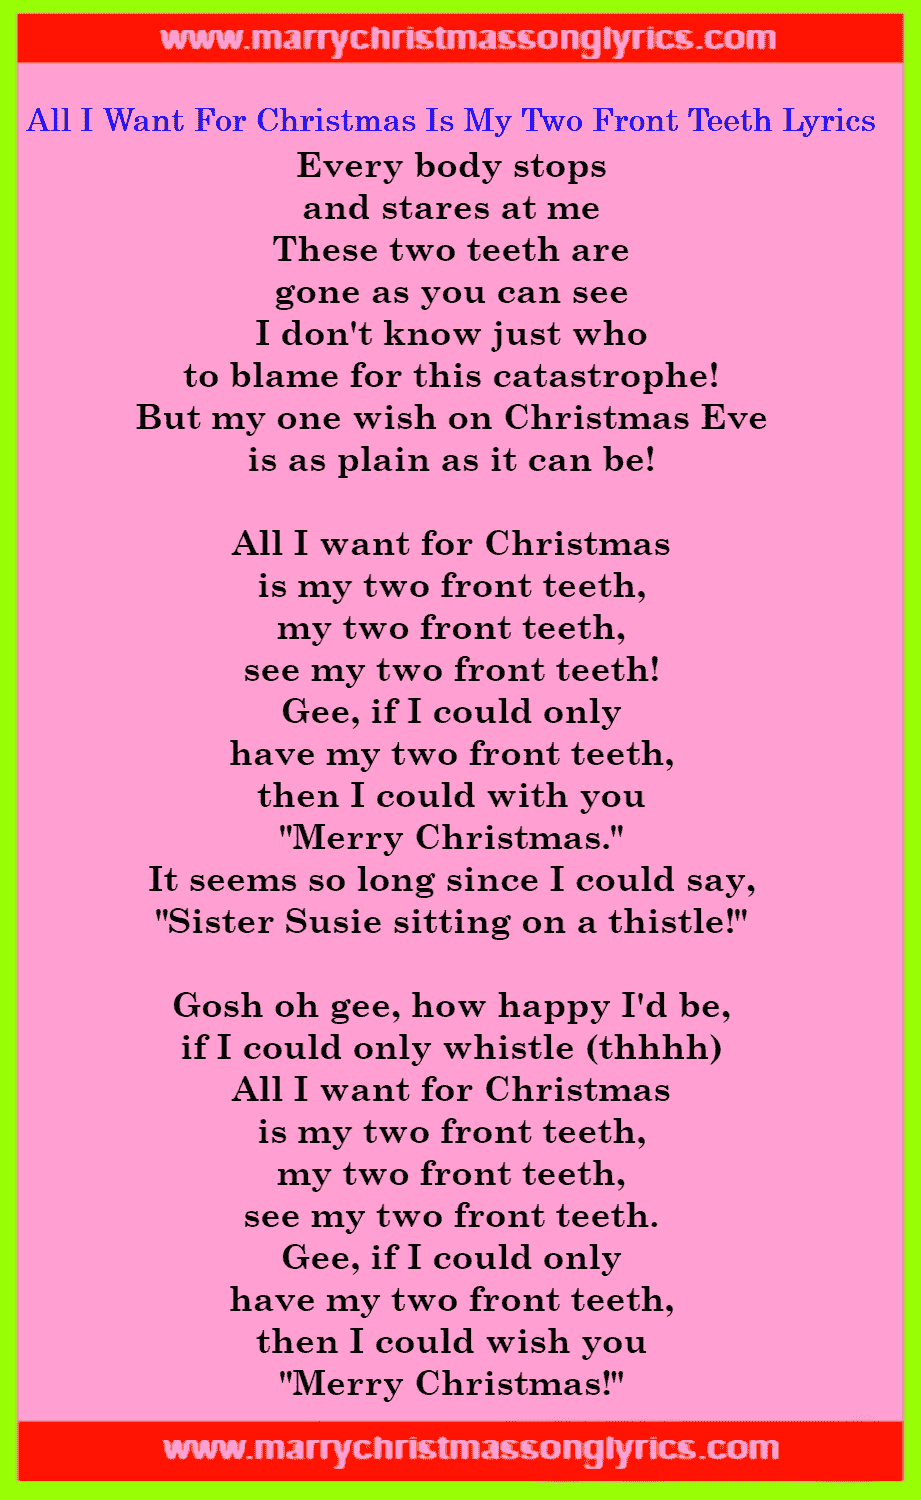 All I Want For Christmas Is My Two Front Teeth Lyrics Image